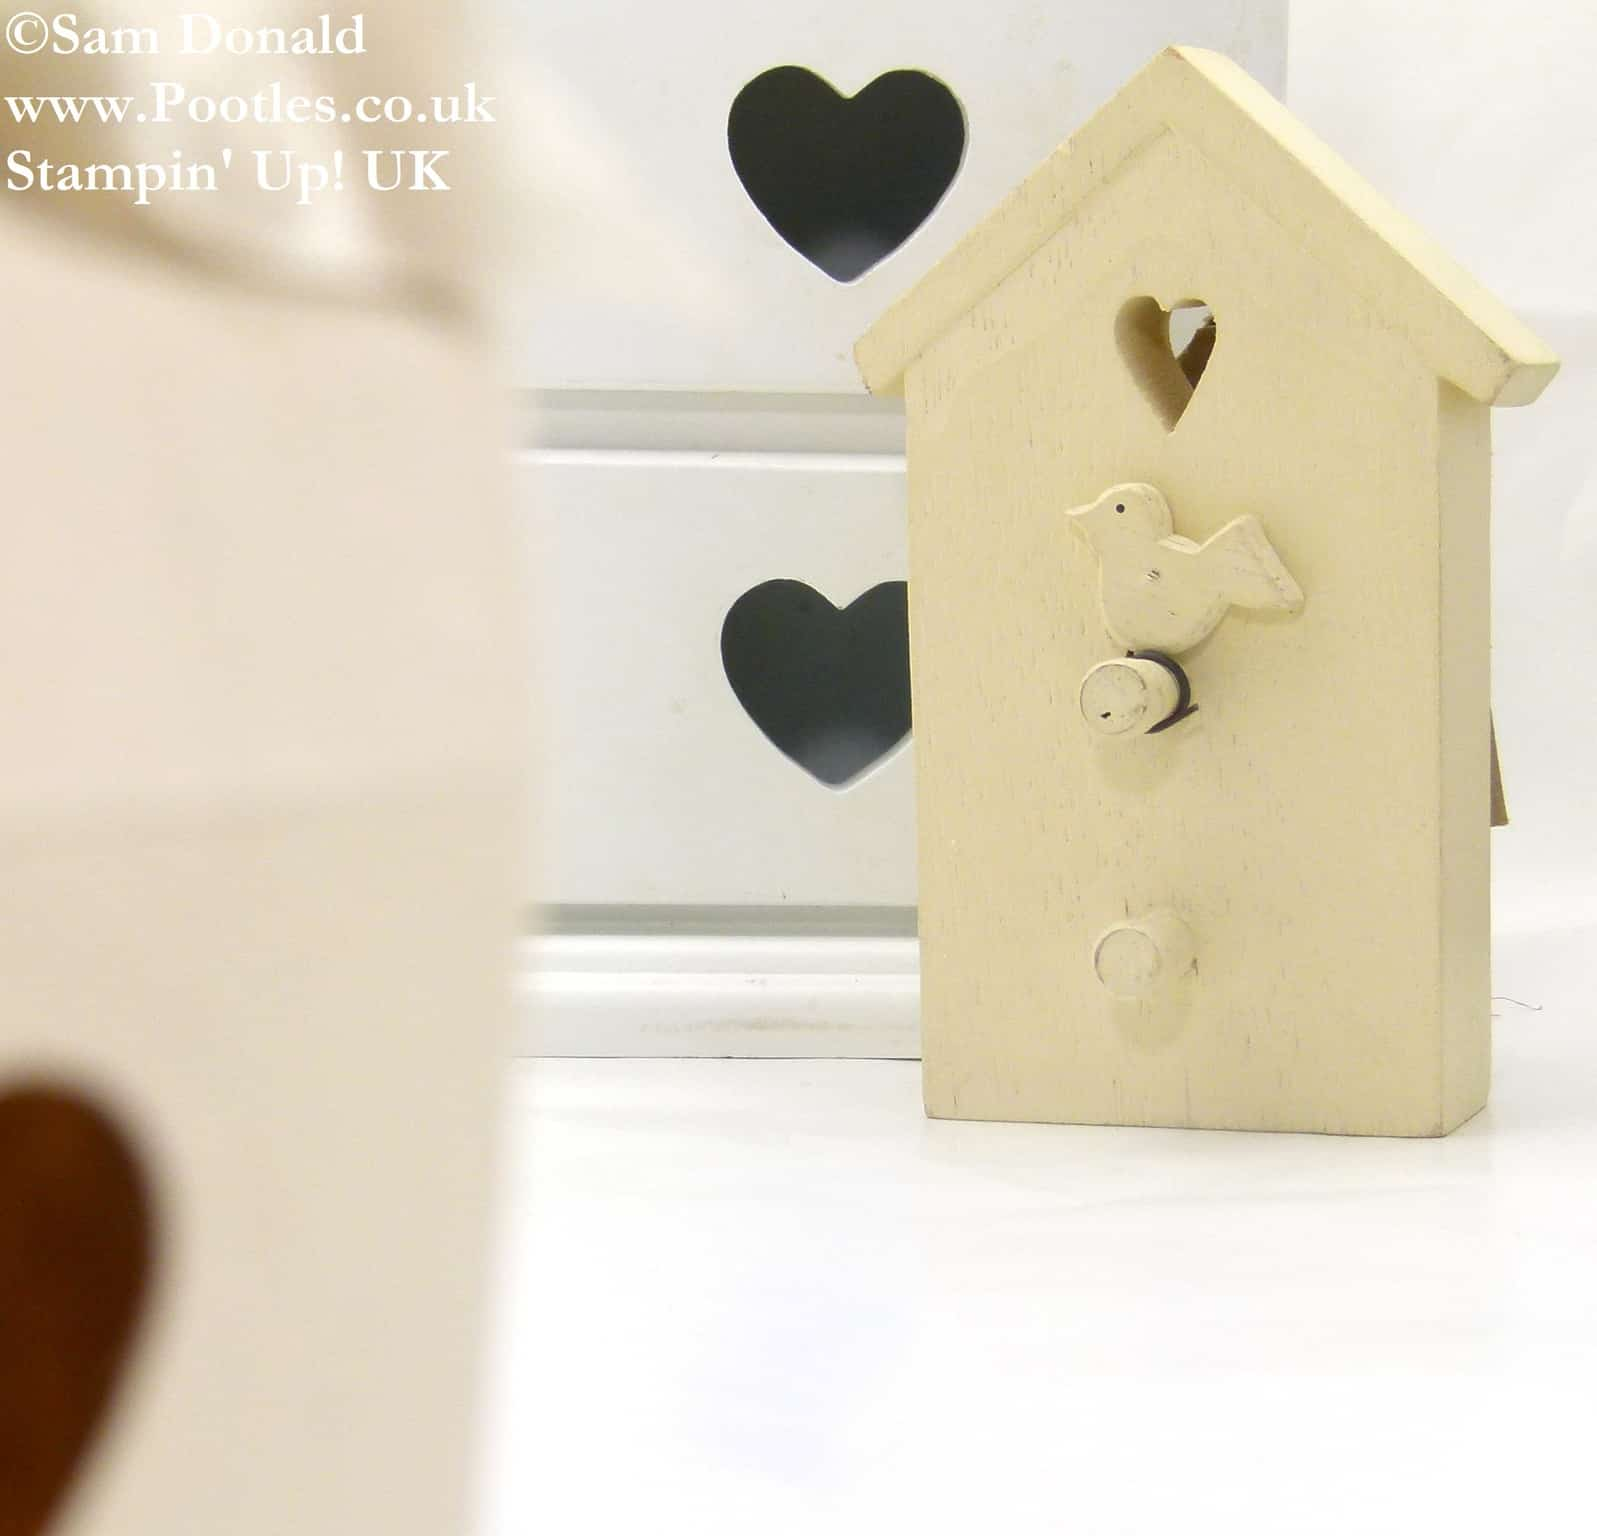 POOTLES Stampin Up UK Inspired Bird Gift Box Tutorial 3